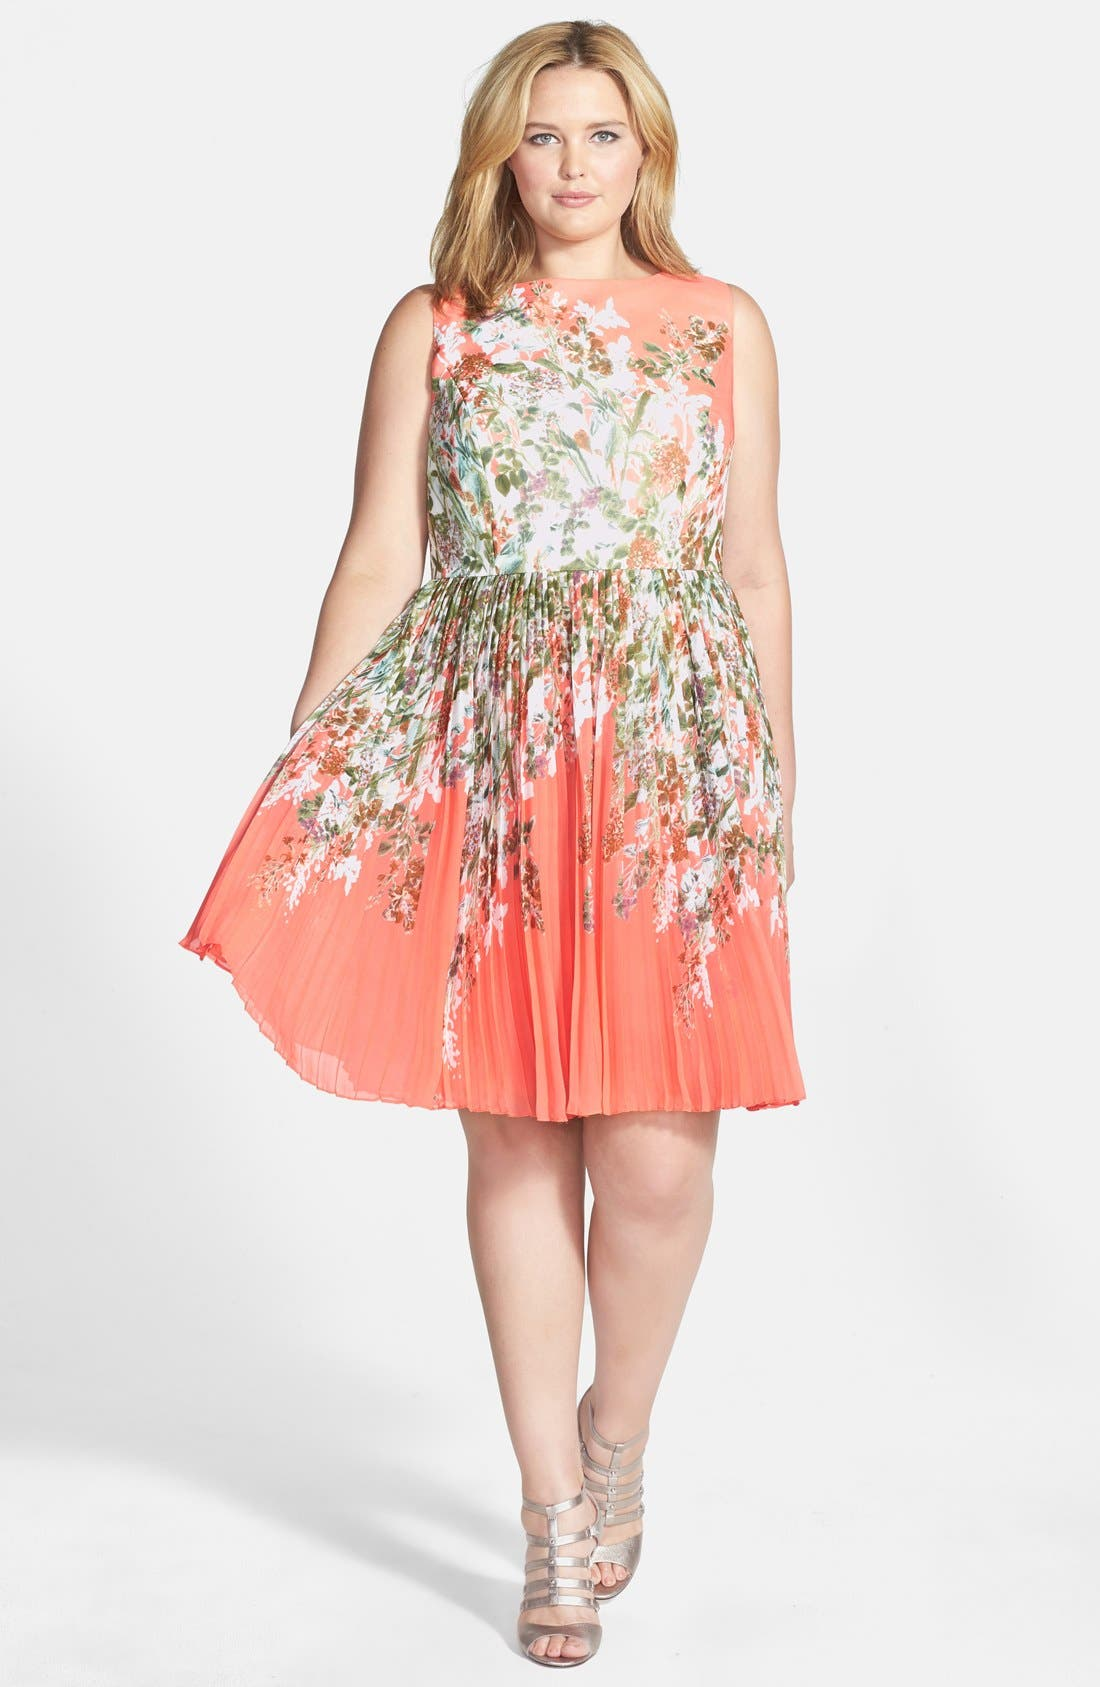 Main Image - Adrianna Papell Floral Print Pleat Chiffon Fit & Flare Dress (Plus Size)